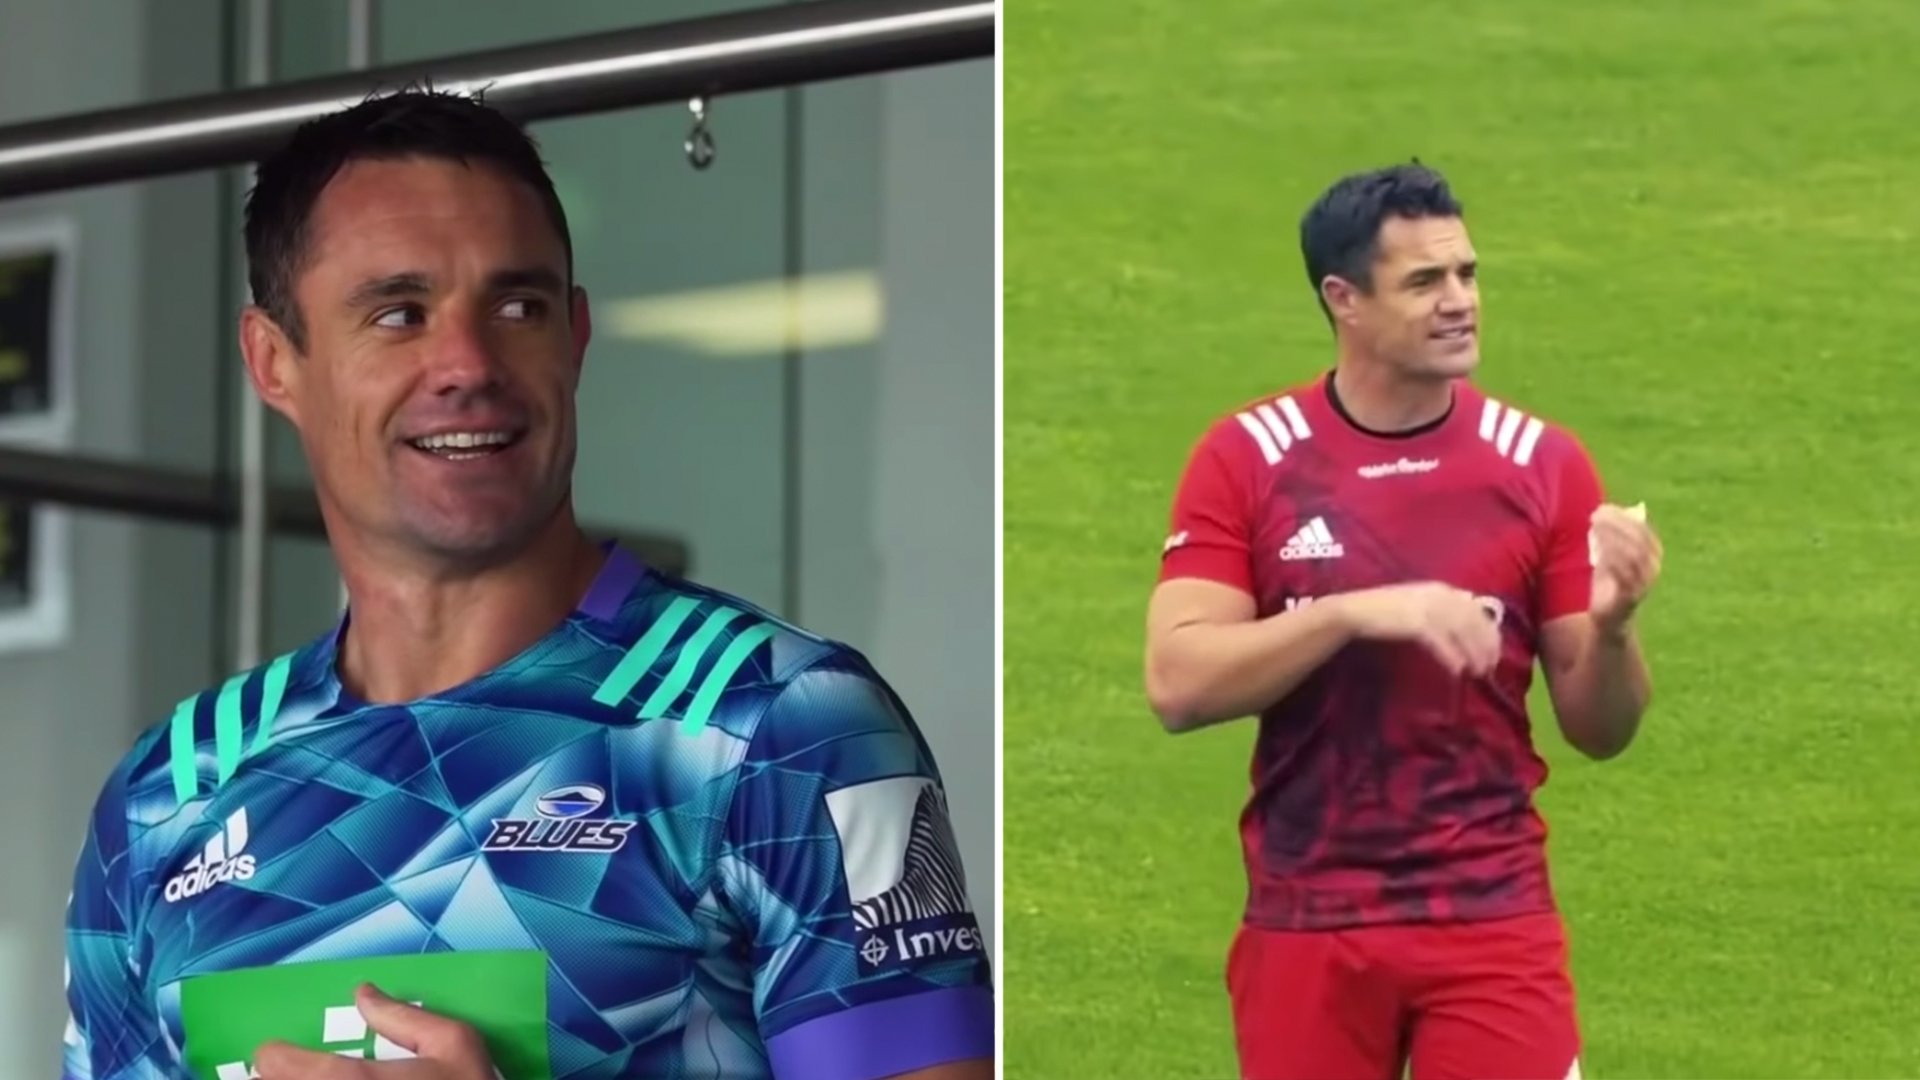 Footage of Dan Carter playing in Japan this season goes viral again as fans question if he is still good enough